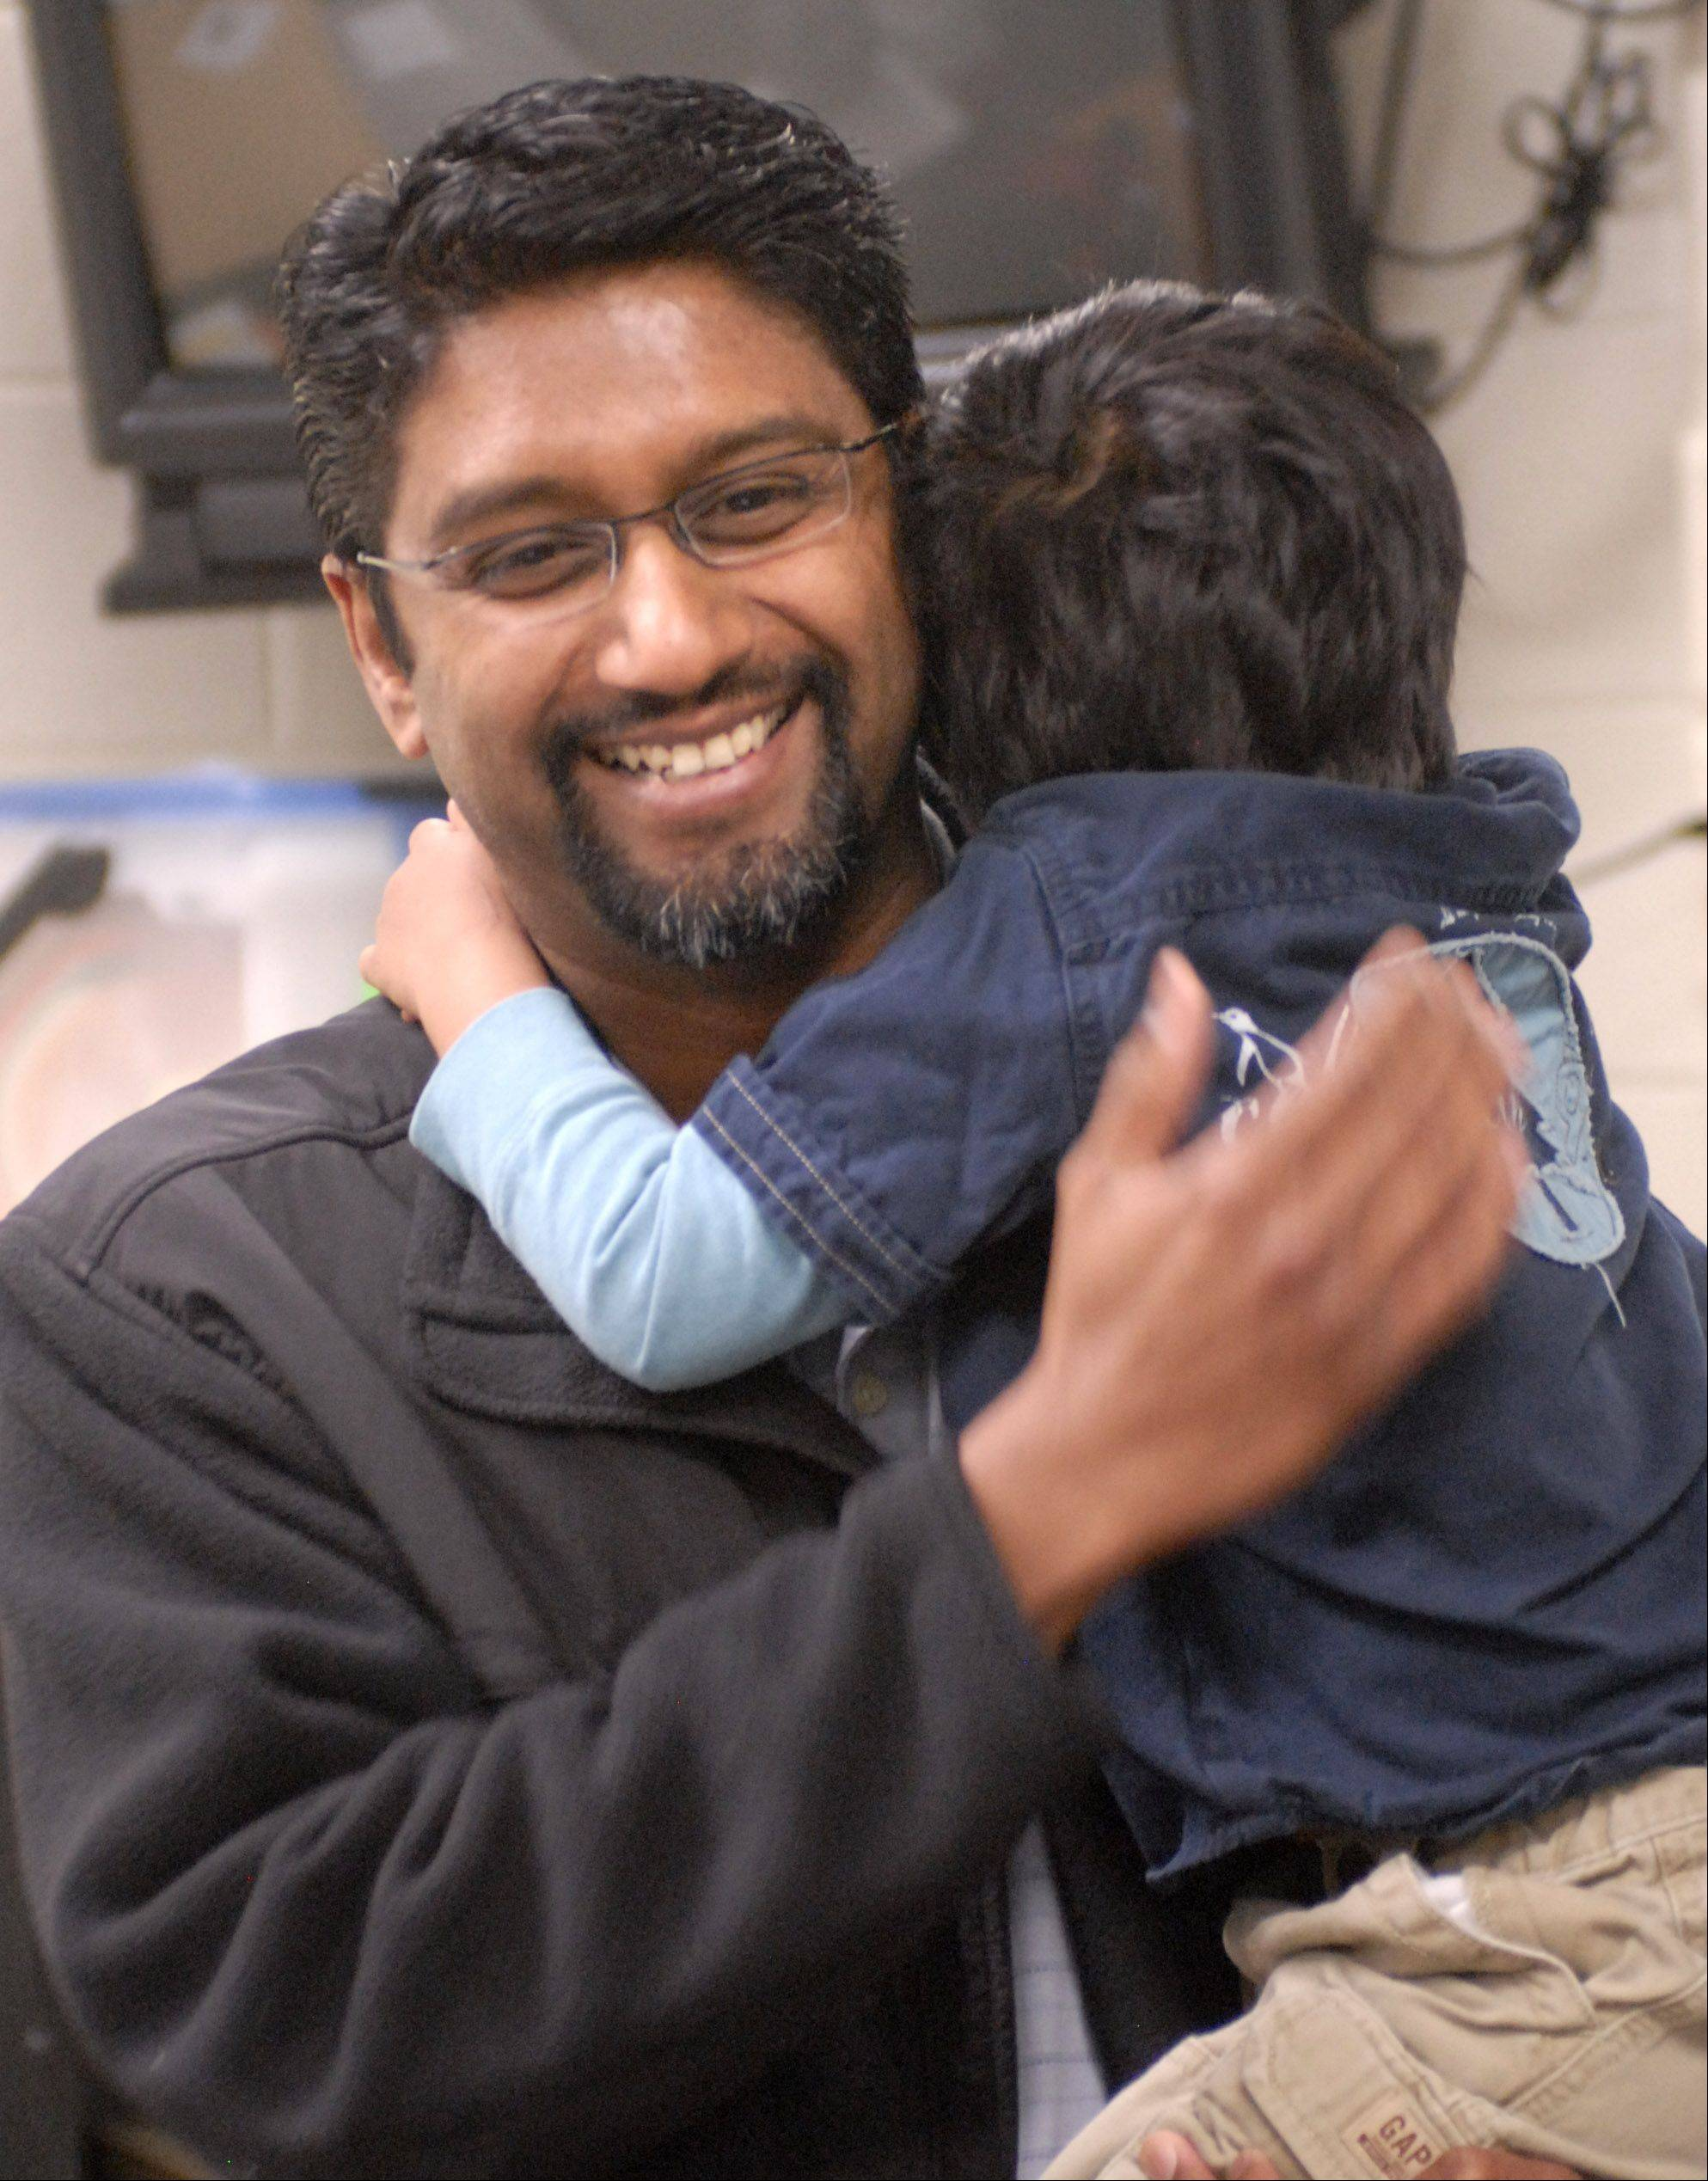 Stevenson High School math teacher Darshan Jain is all smiles while holding his 3-year-old son Eden after being presented with the Golden Apple Award in 2010.